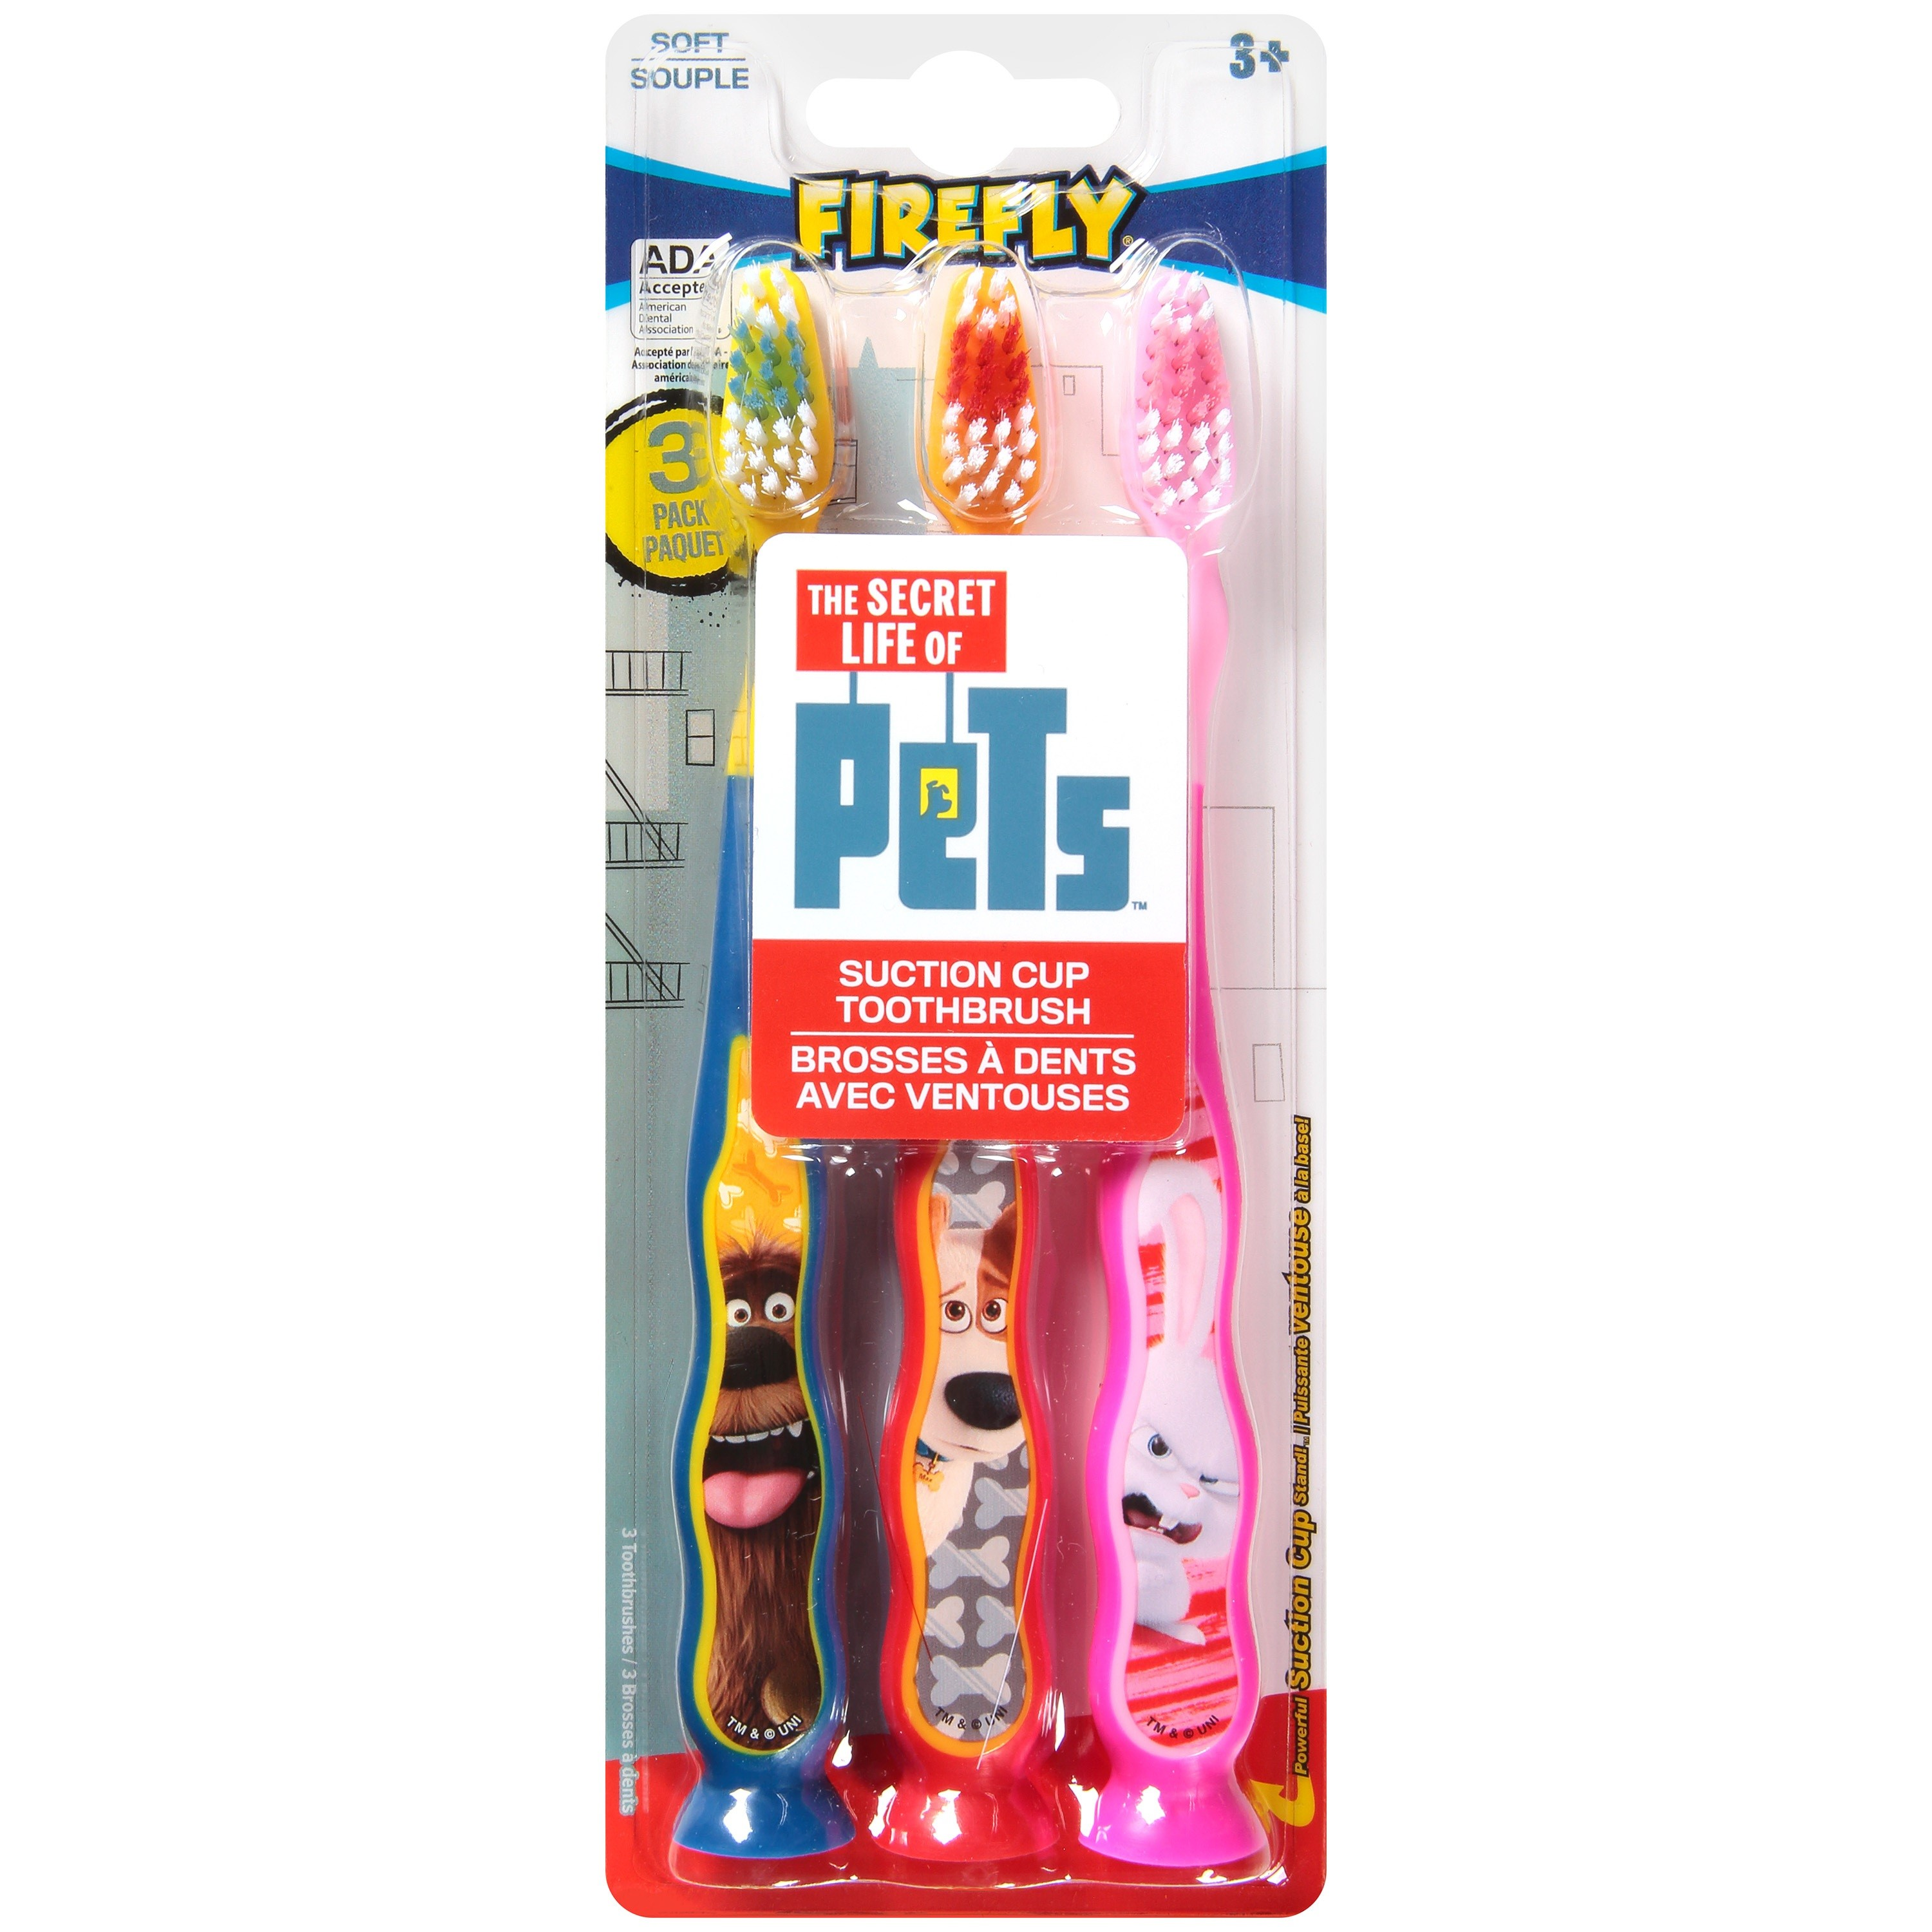 The Secret Life of Pets Suction Cup Soft Toothbrushes, 3 count (color may vary)